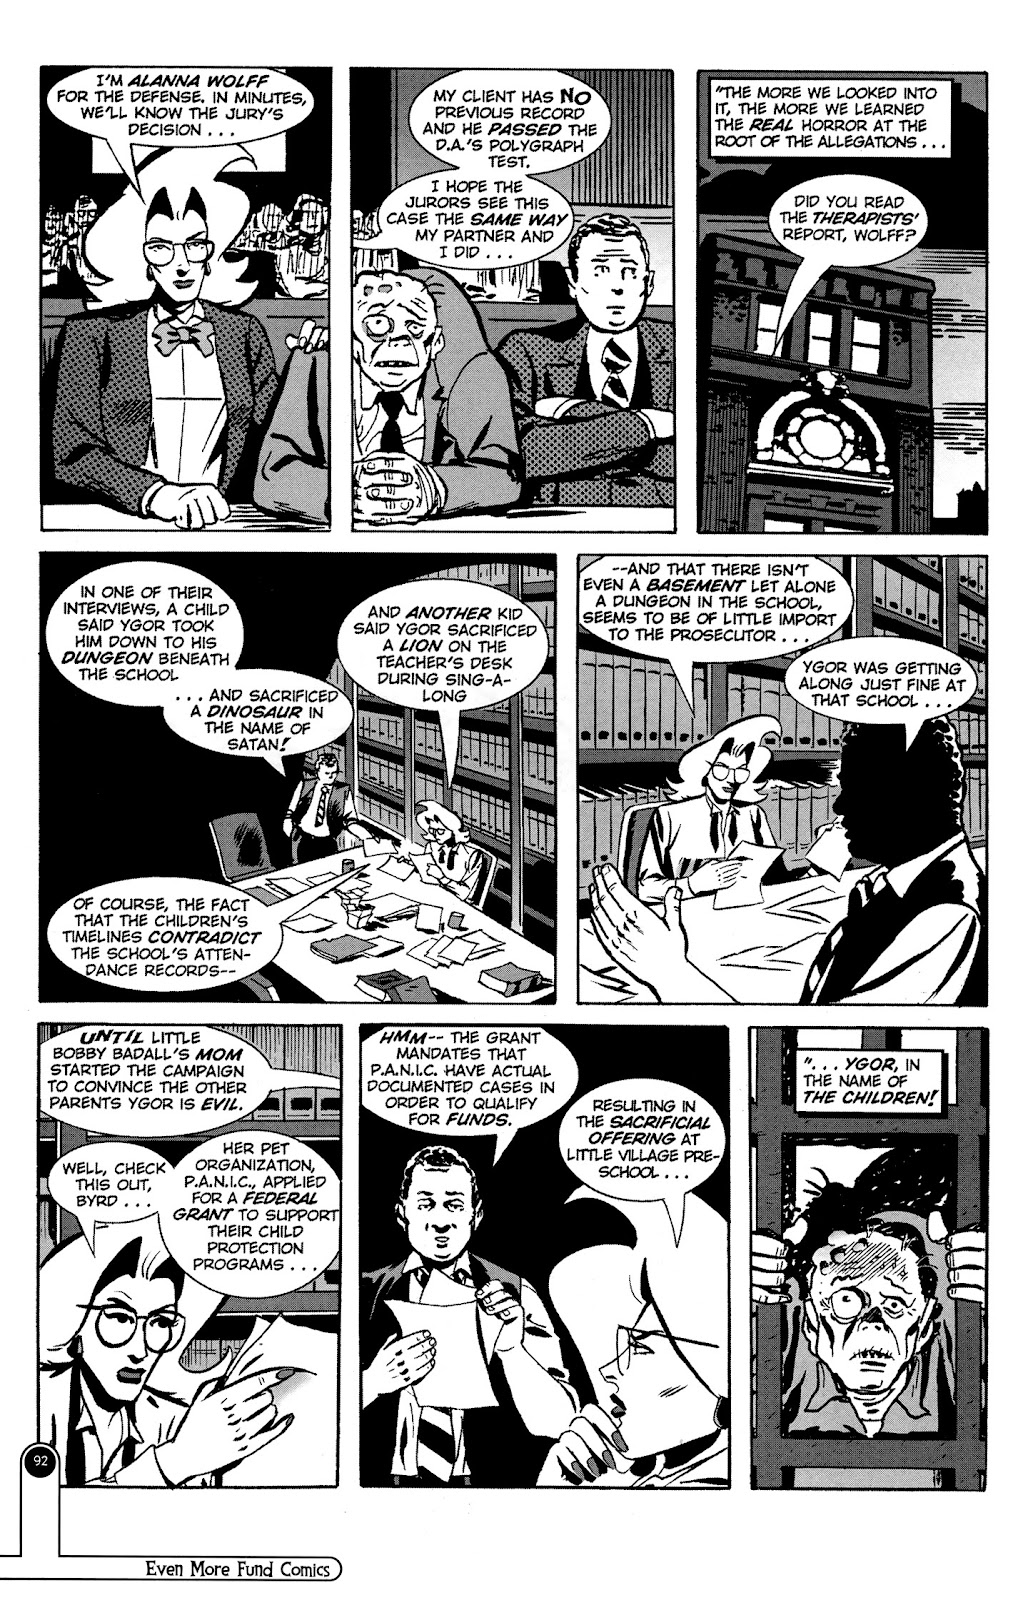 Read online Even More Fund Comics comic -  Issue # TPB (Part 1) - 92